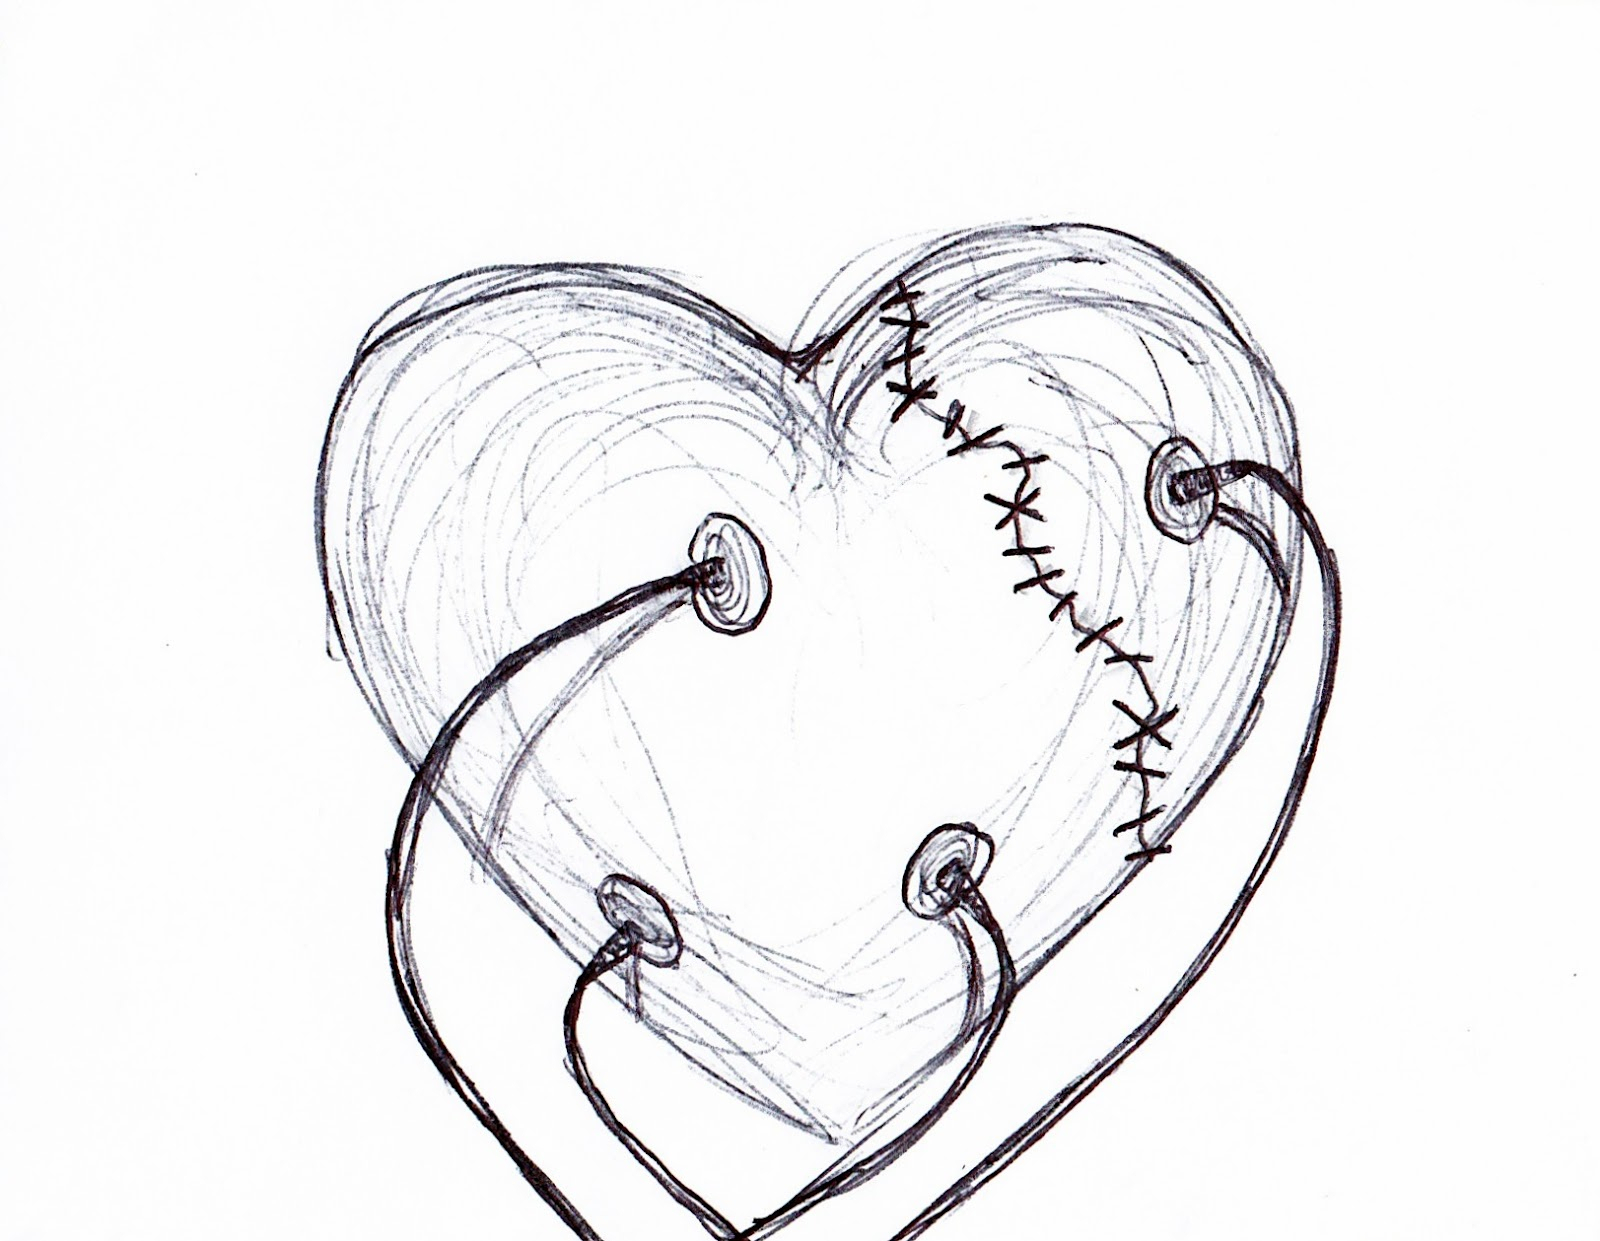 1600x1241 Easy Emo Sketches Emo Drawings Of Broken Hearts In Pencil